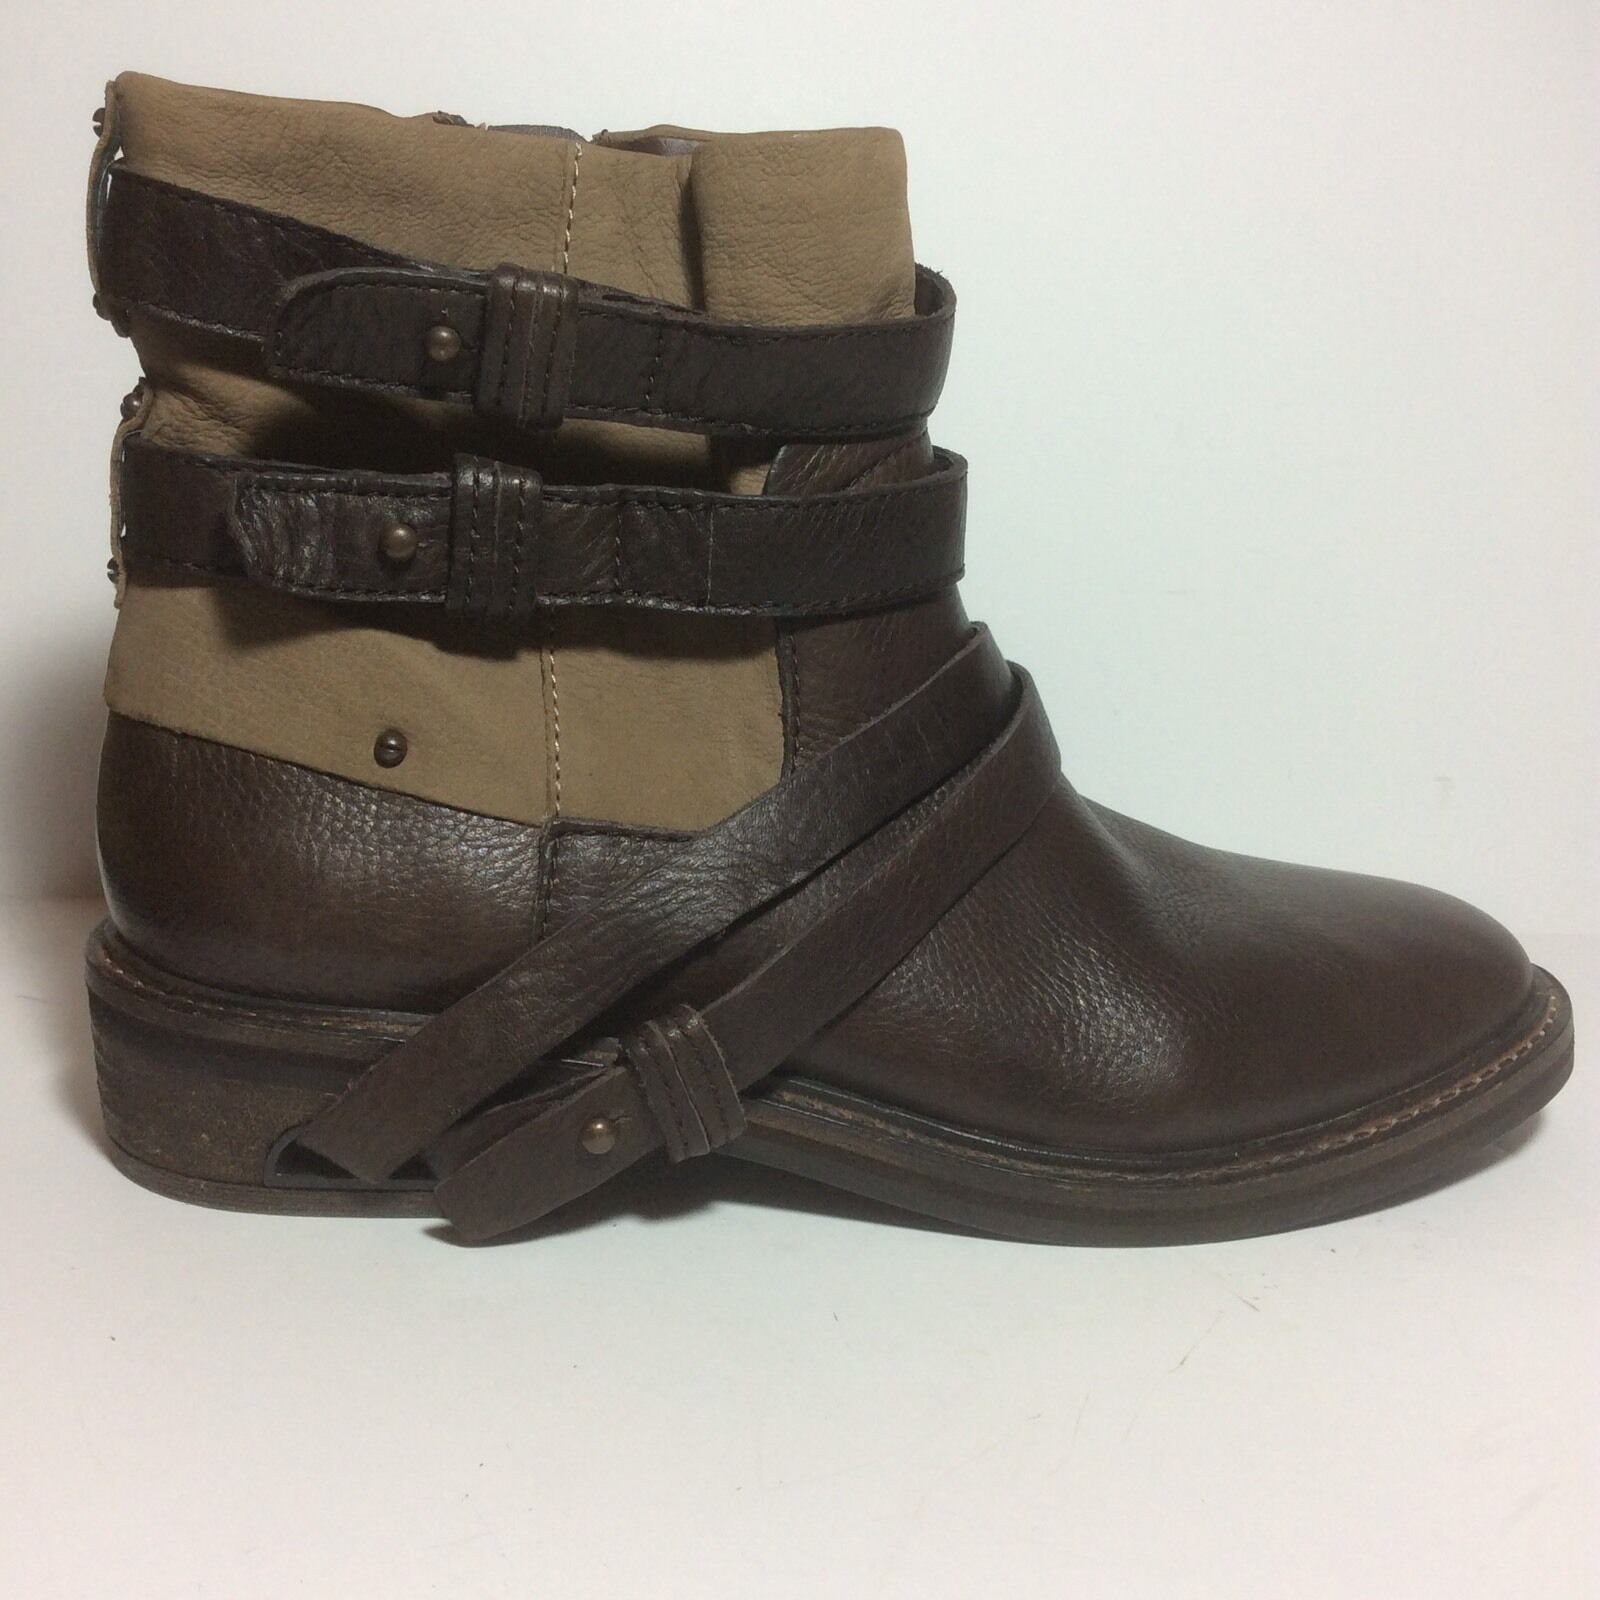 NEW  250 Dolce Vita Kiera Belted Round Toe Leather Ankle Boot Brown Sz 9